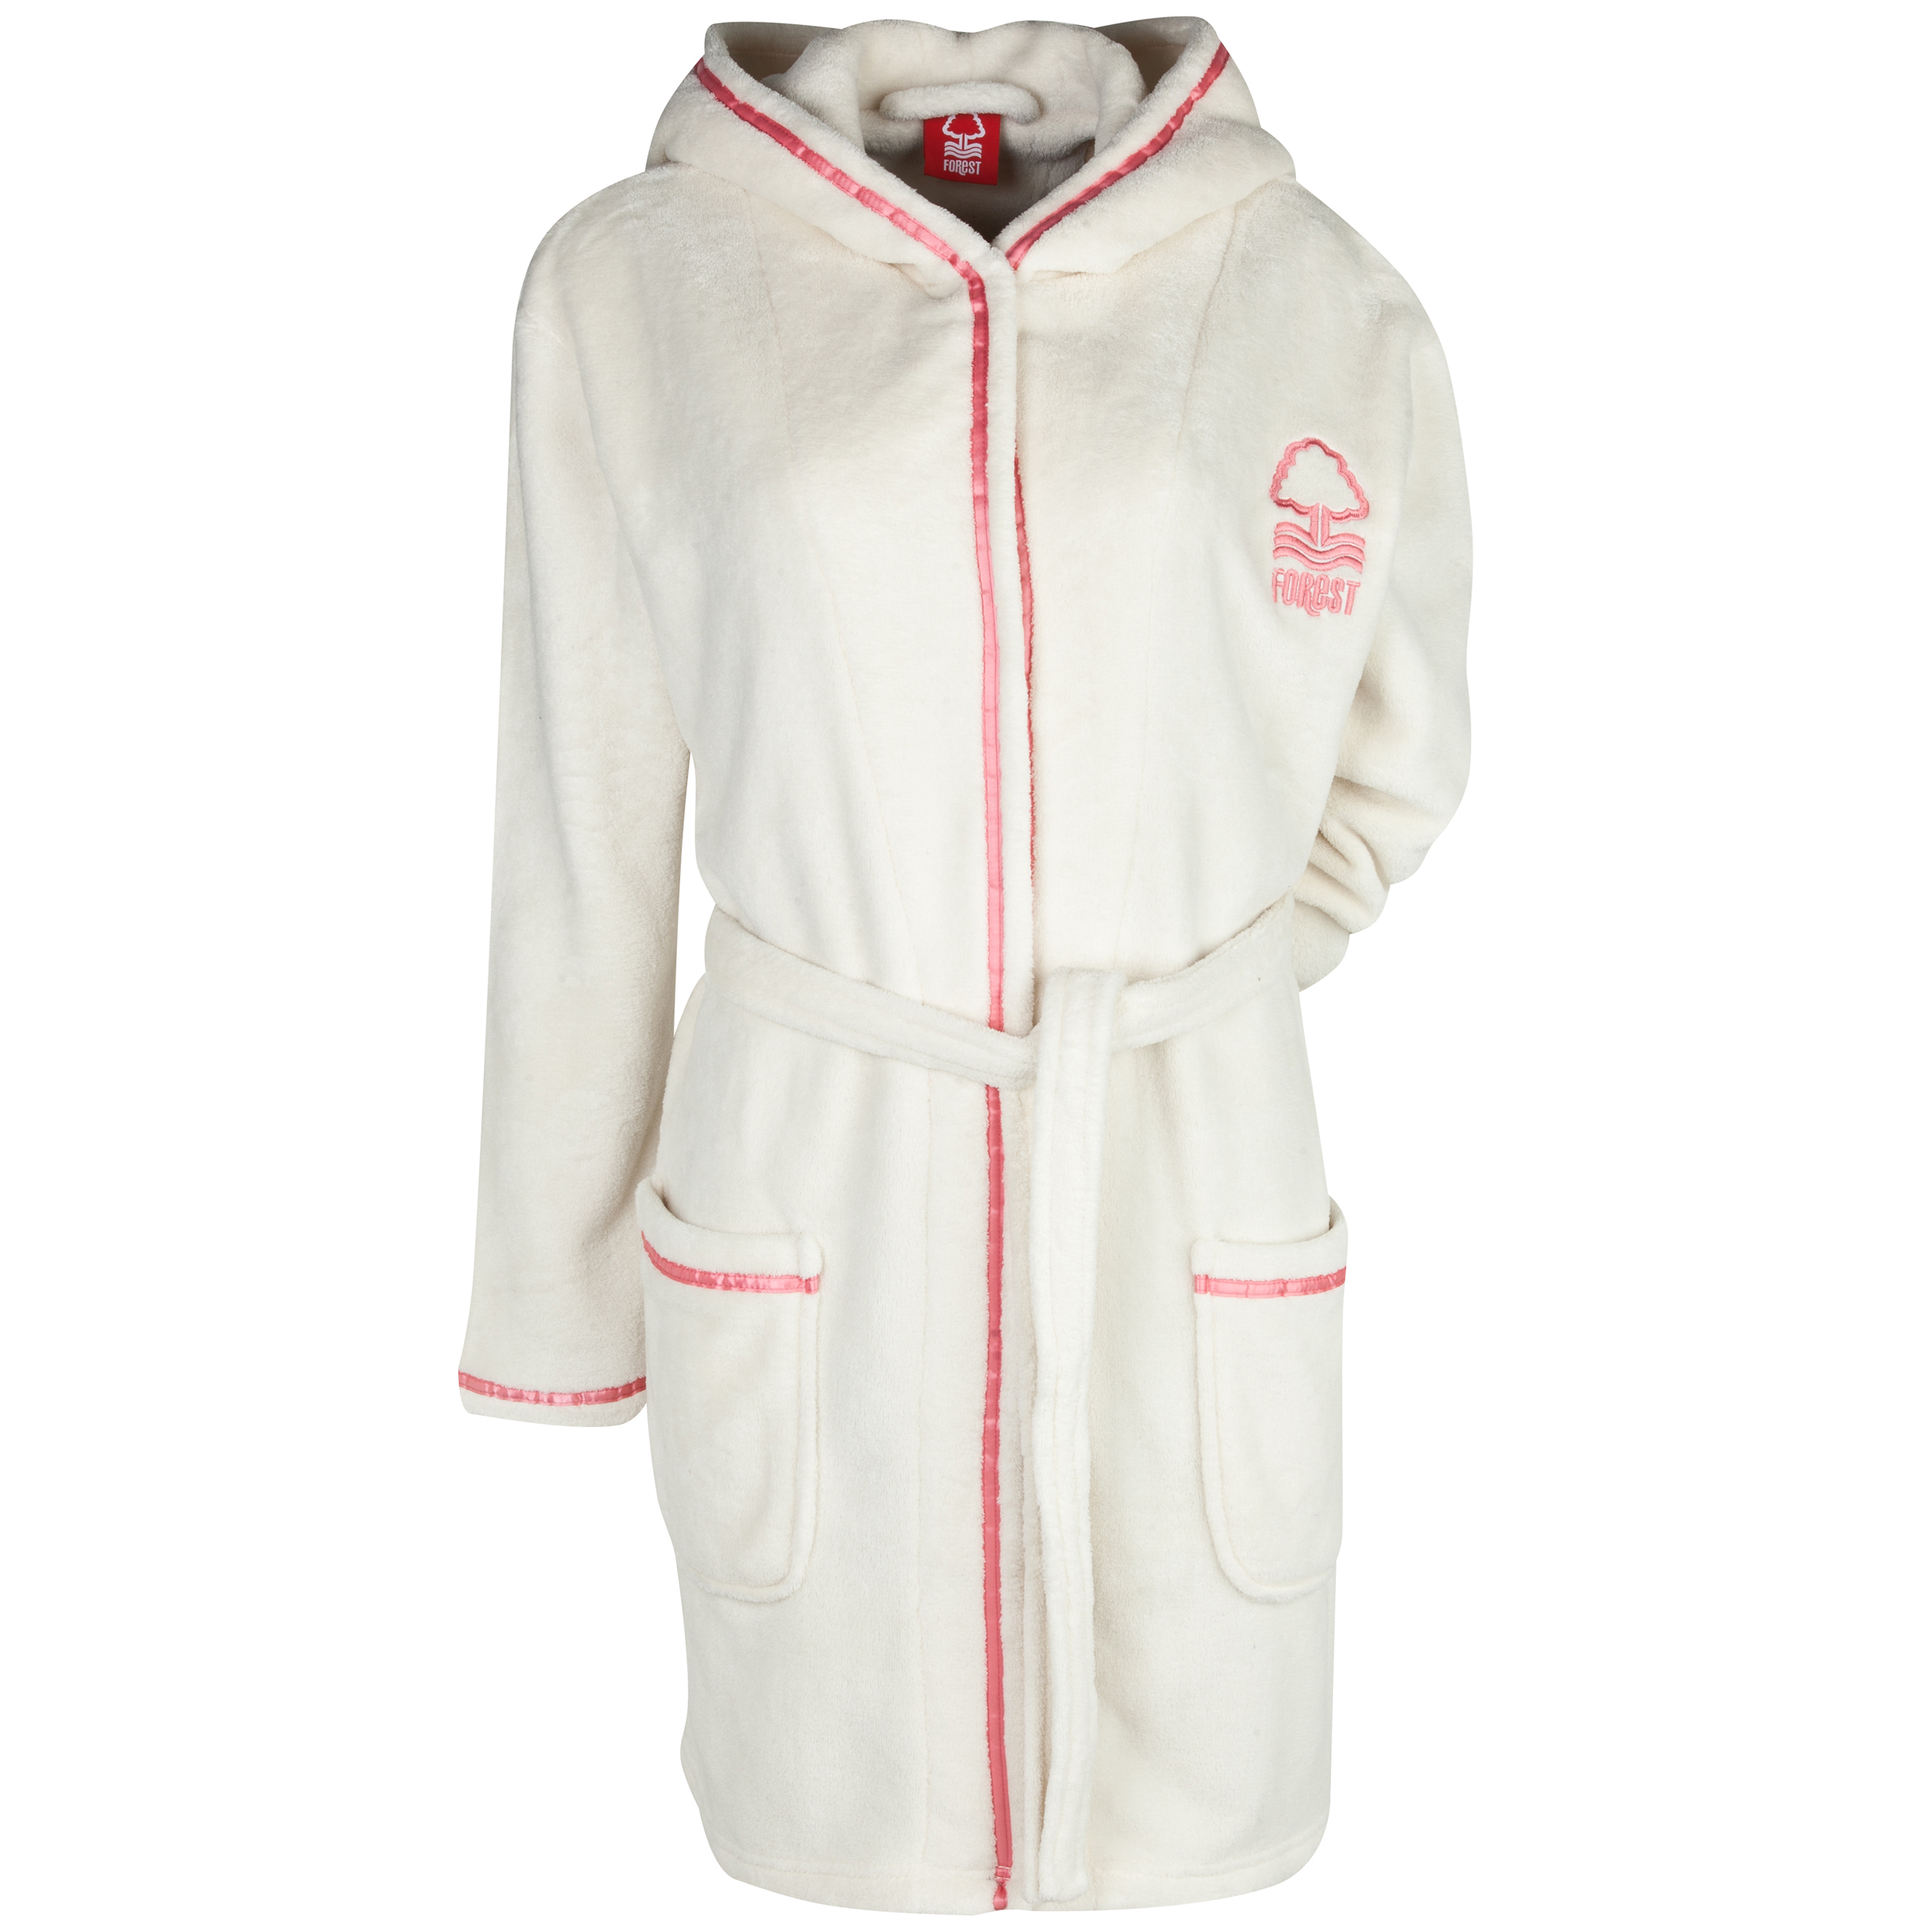 Nottingham Forest Robe Womens Cream